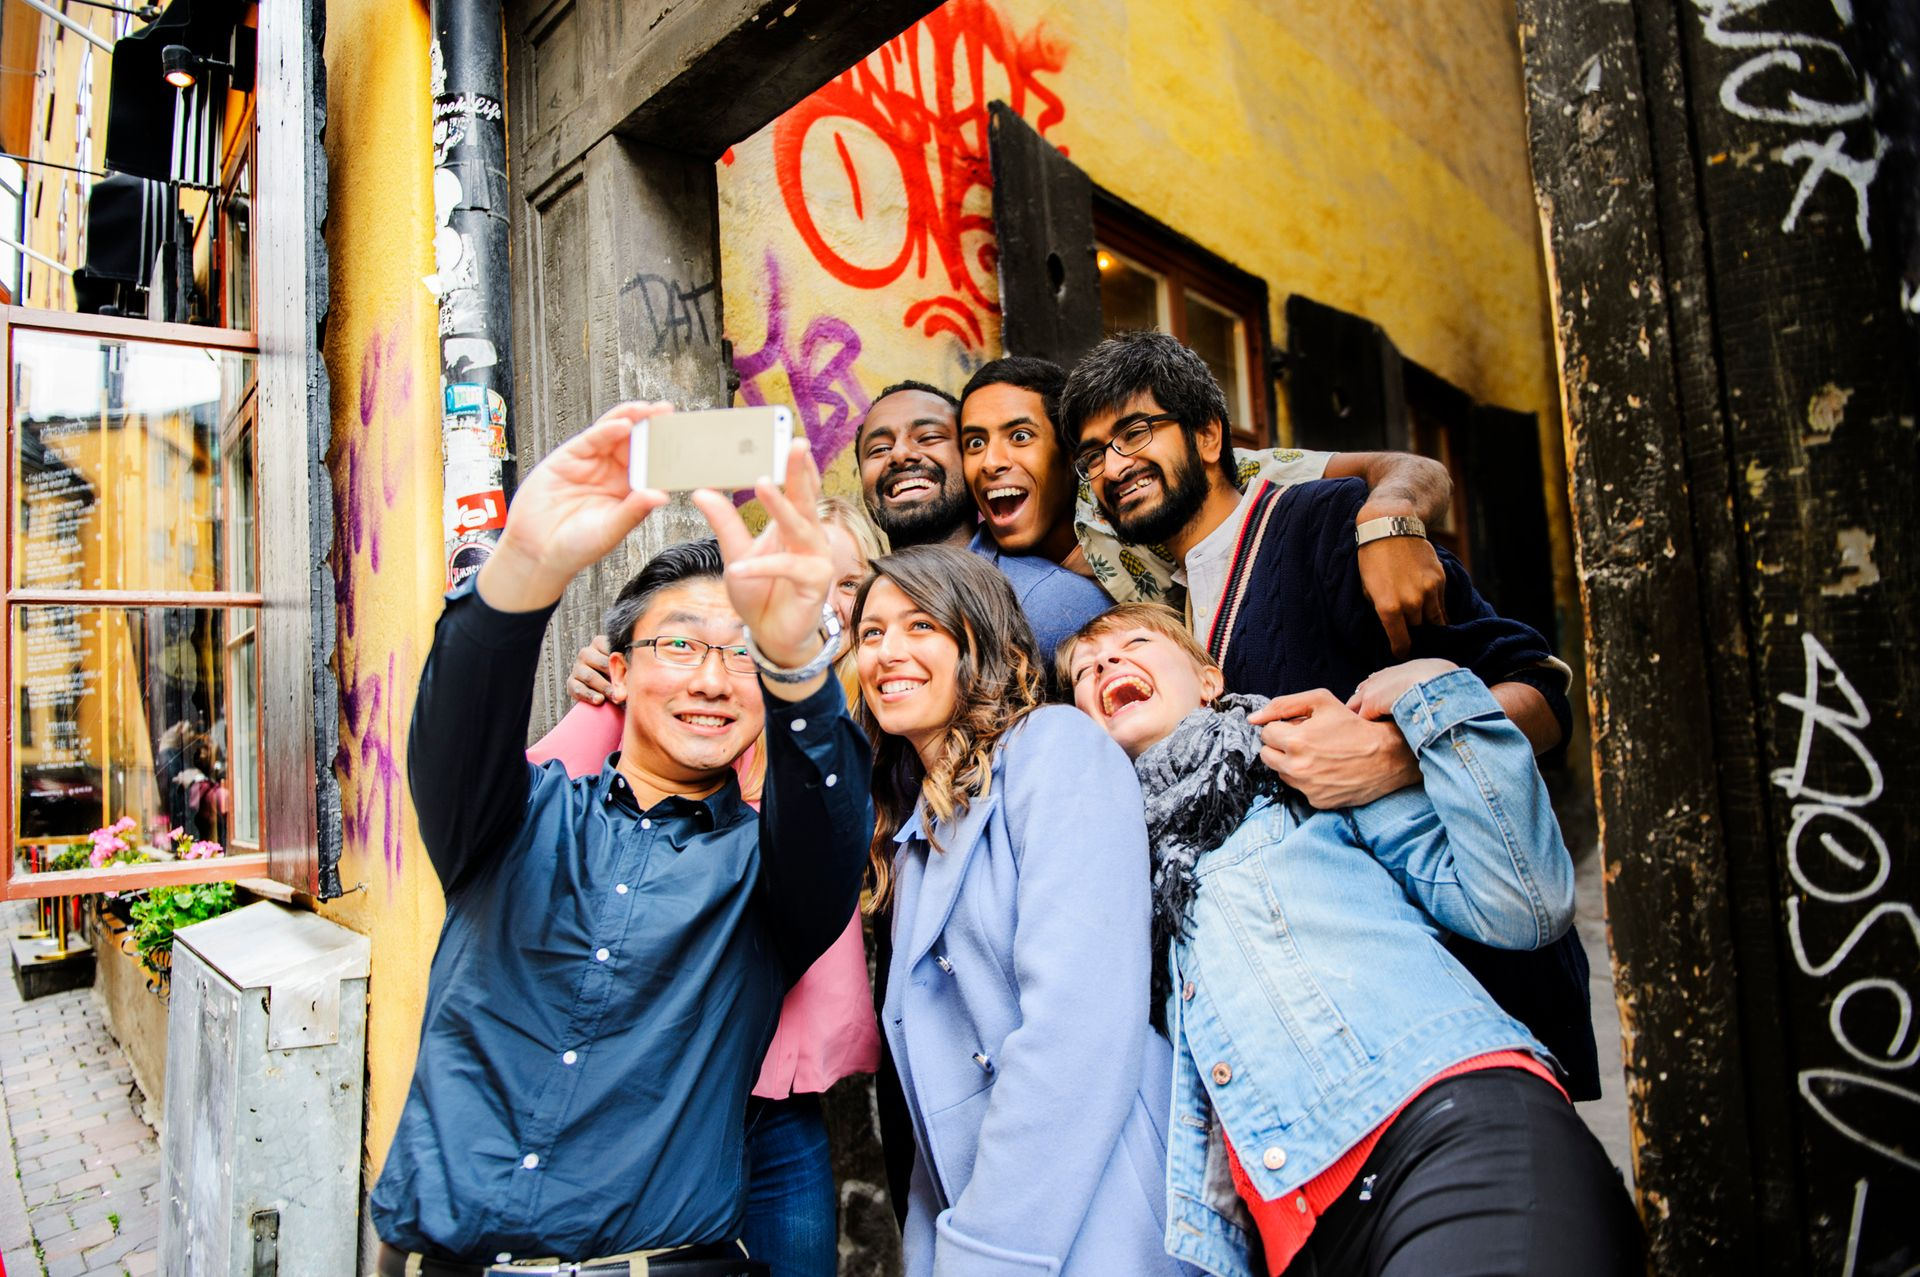 A group of international students taking a group selfie in Stockholm's Old Town.